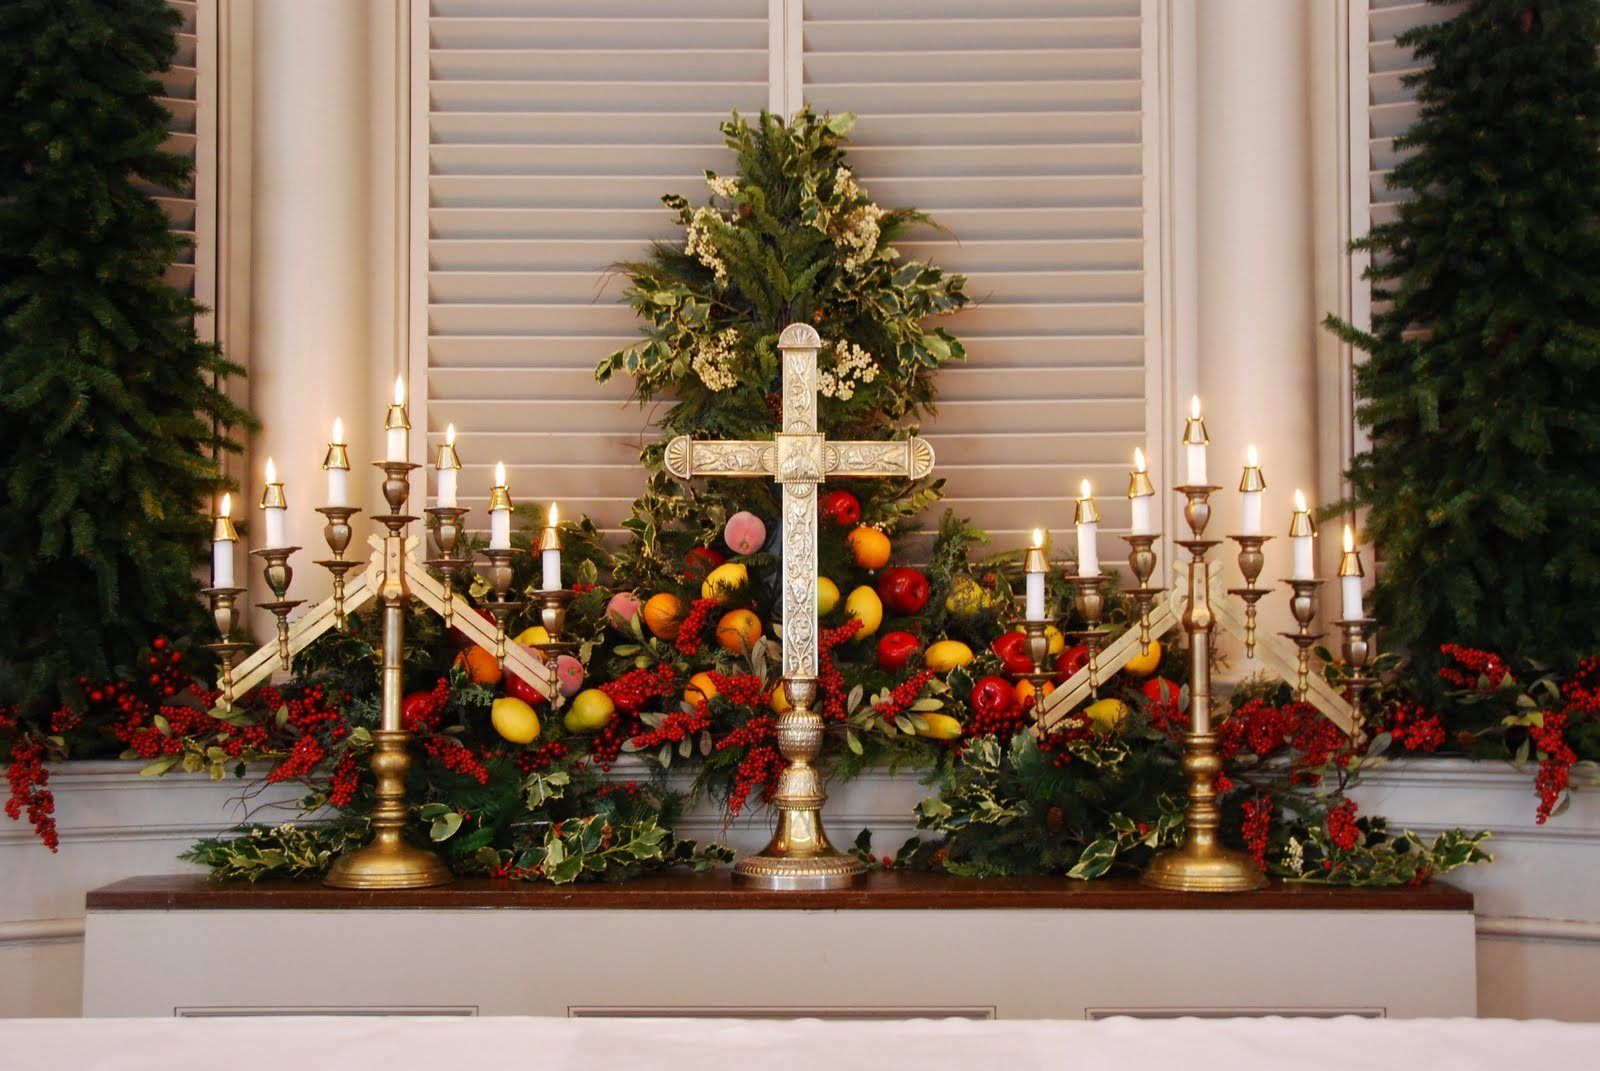 Decorating ideas for christmas church pinterest for Christmas hall decorations